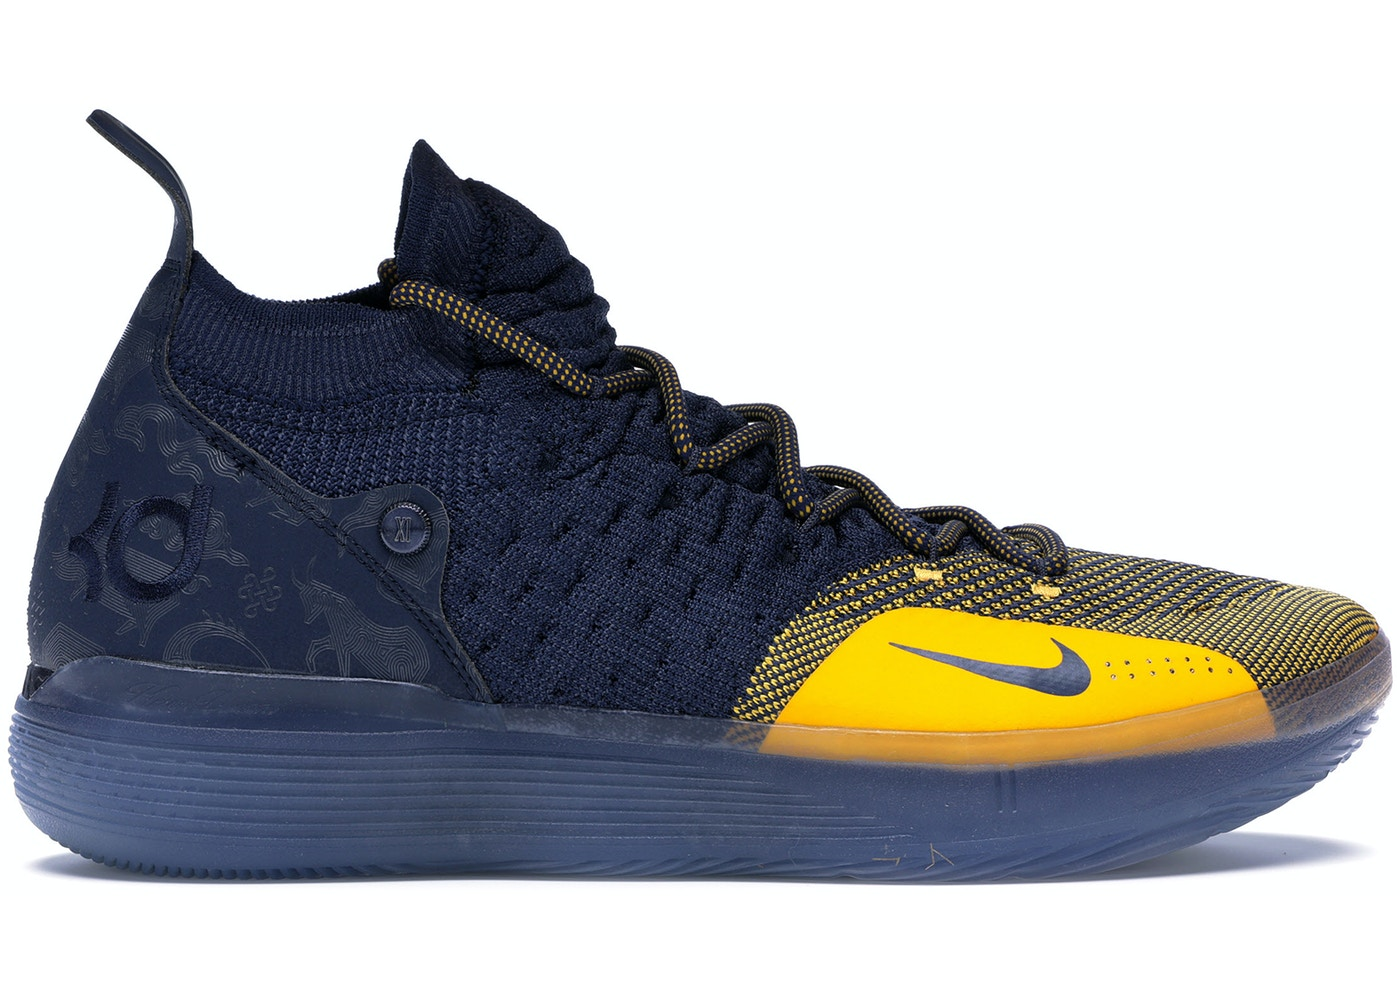 premium selection 7837d a2bf5 Buy Nike KD Shoes   Deadstock Sneakers